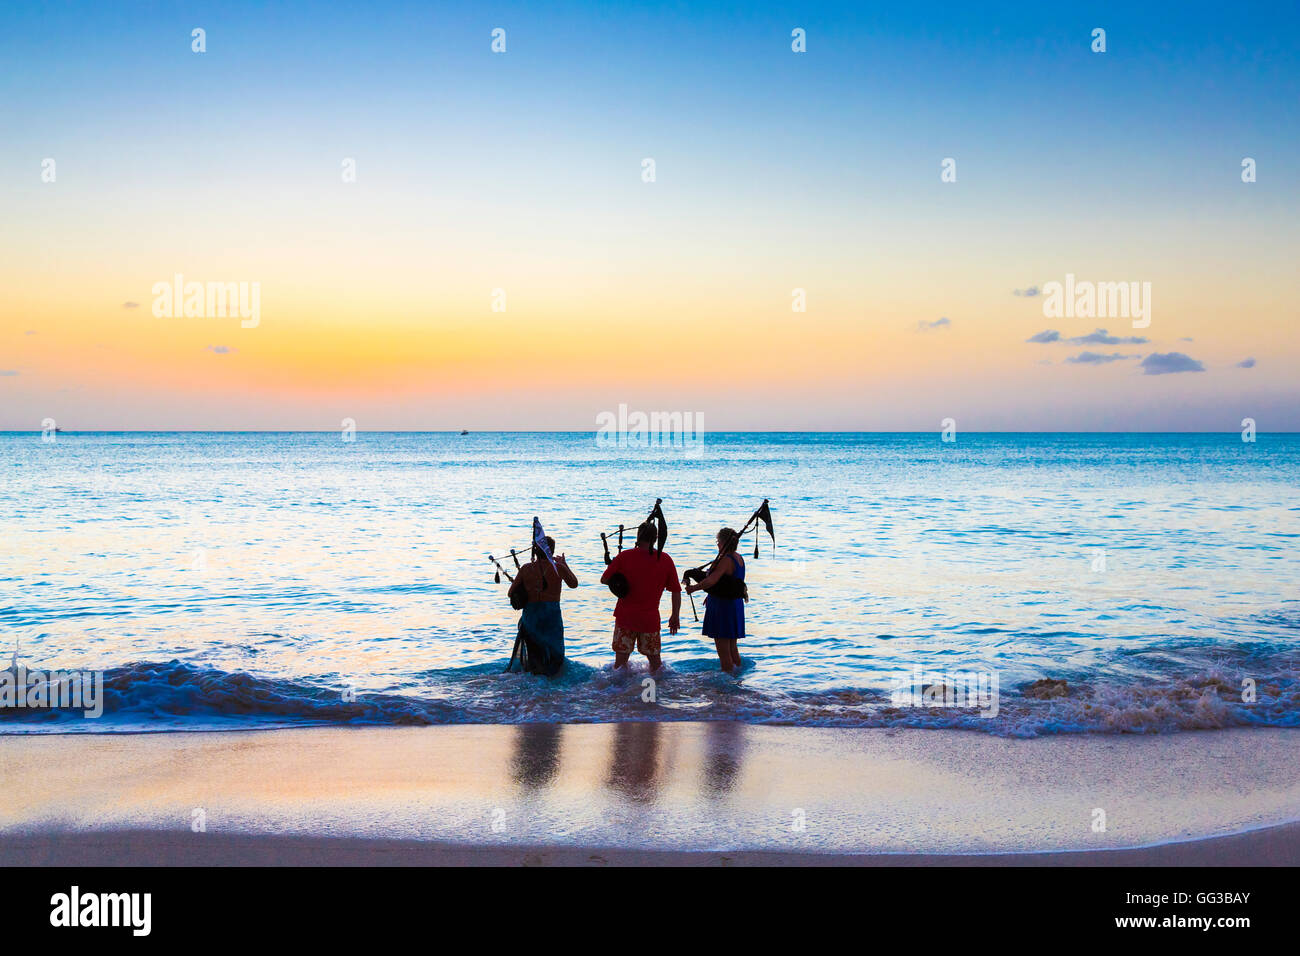 Bagpipers wading into the sea playing bagpipes on the beach at Jolly Harbour at sunset, south-west Antigua - Stock Image